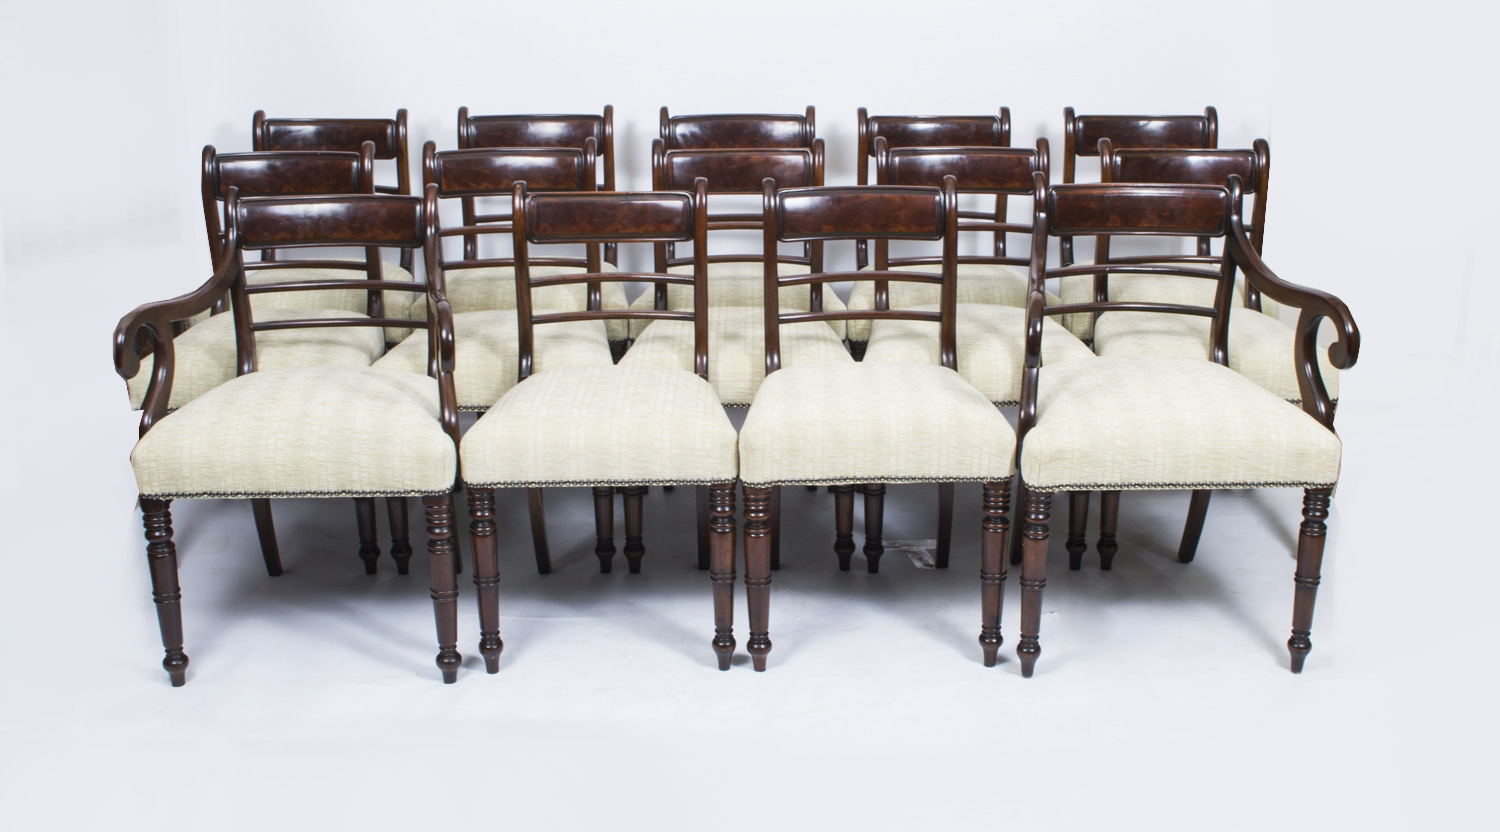 Antique overstuffed chairs - 06980 Antique Set Of 14 George Iii Mahogany Dining Chairs C1800 1